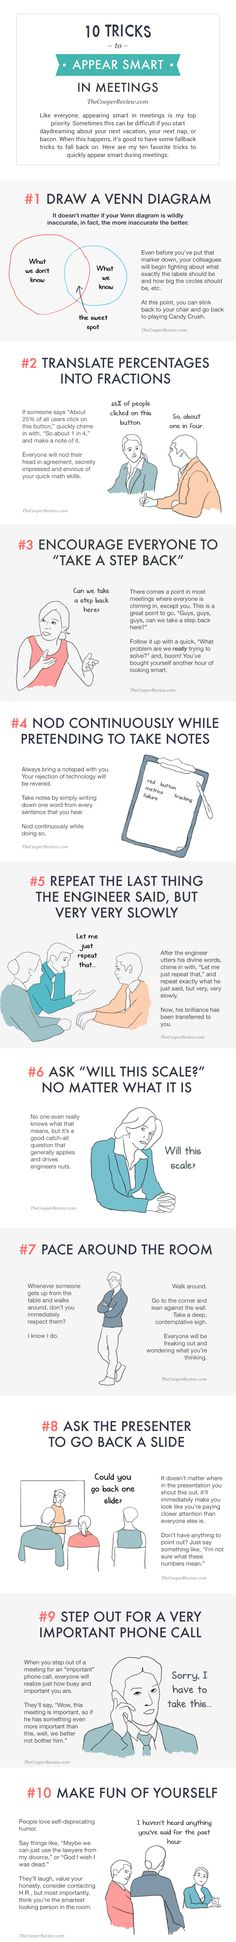 Too funny not to share: How to seem smart in meetings without really trying - The Washington Post #workplacehumor #work